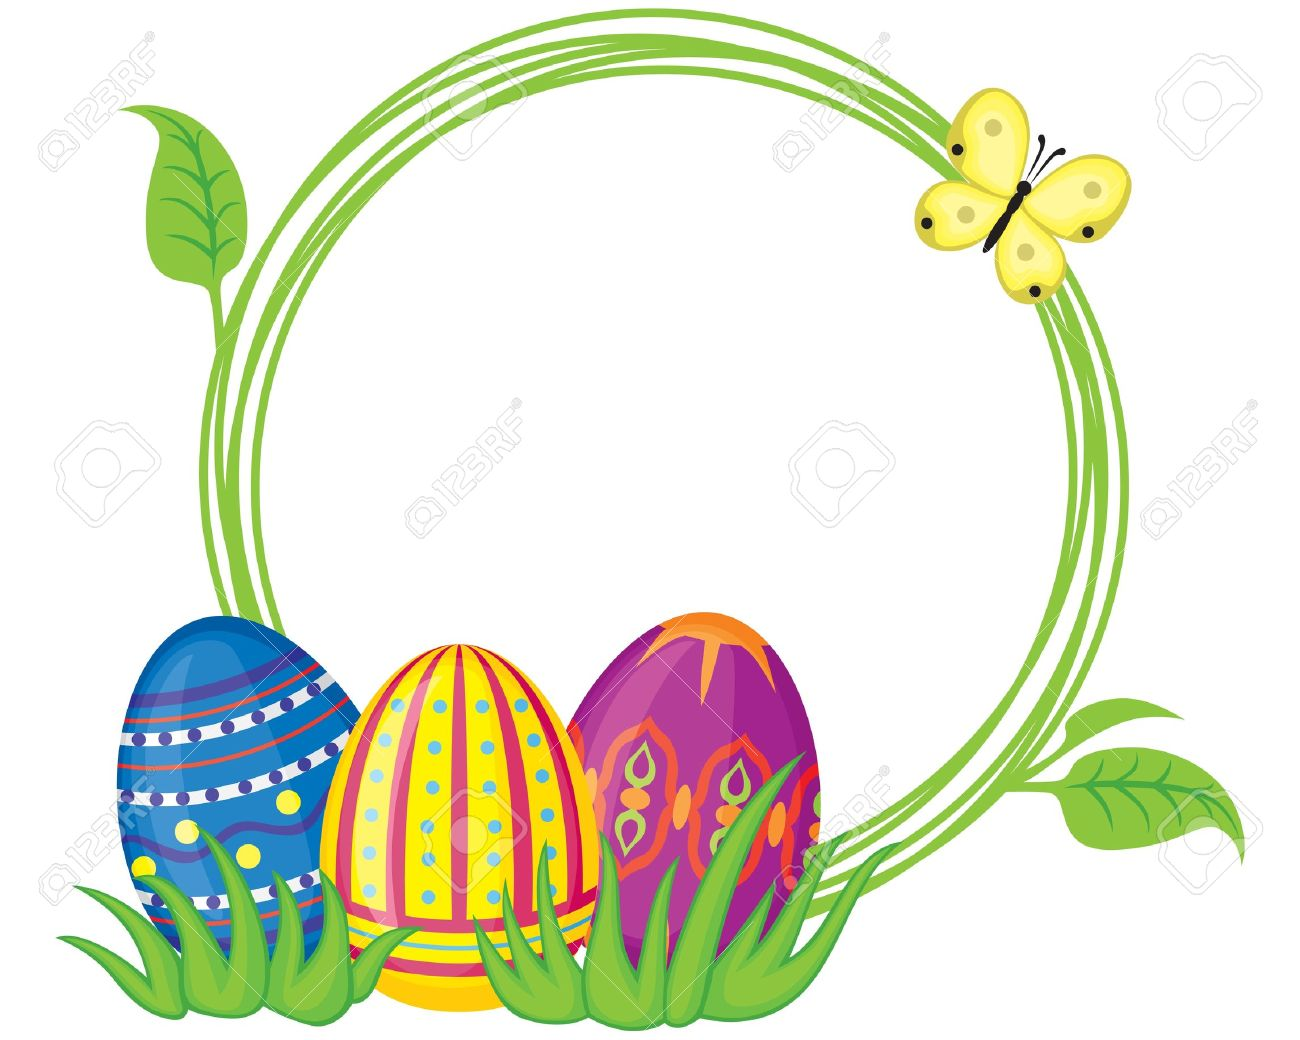 1300x1040 Greeting Frame With Easter Eggs And Grass Royalty Free Cliparts